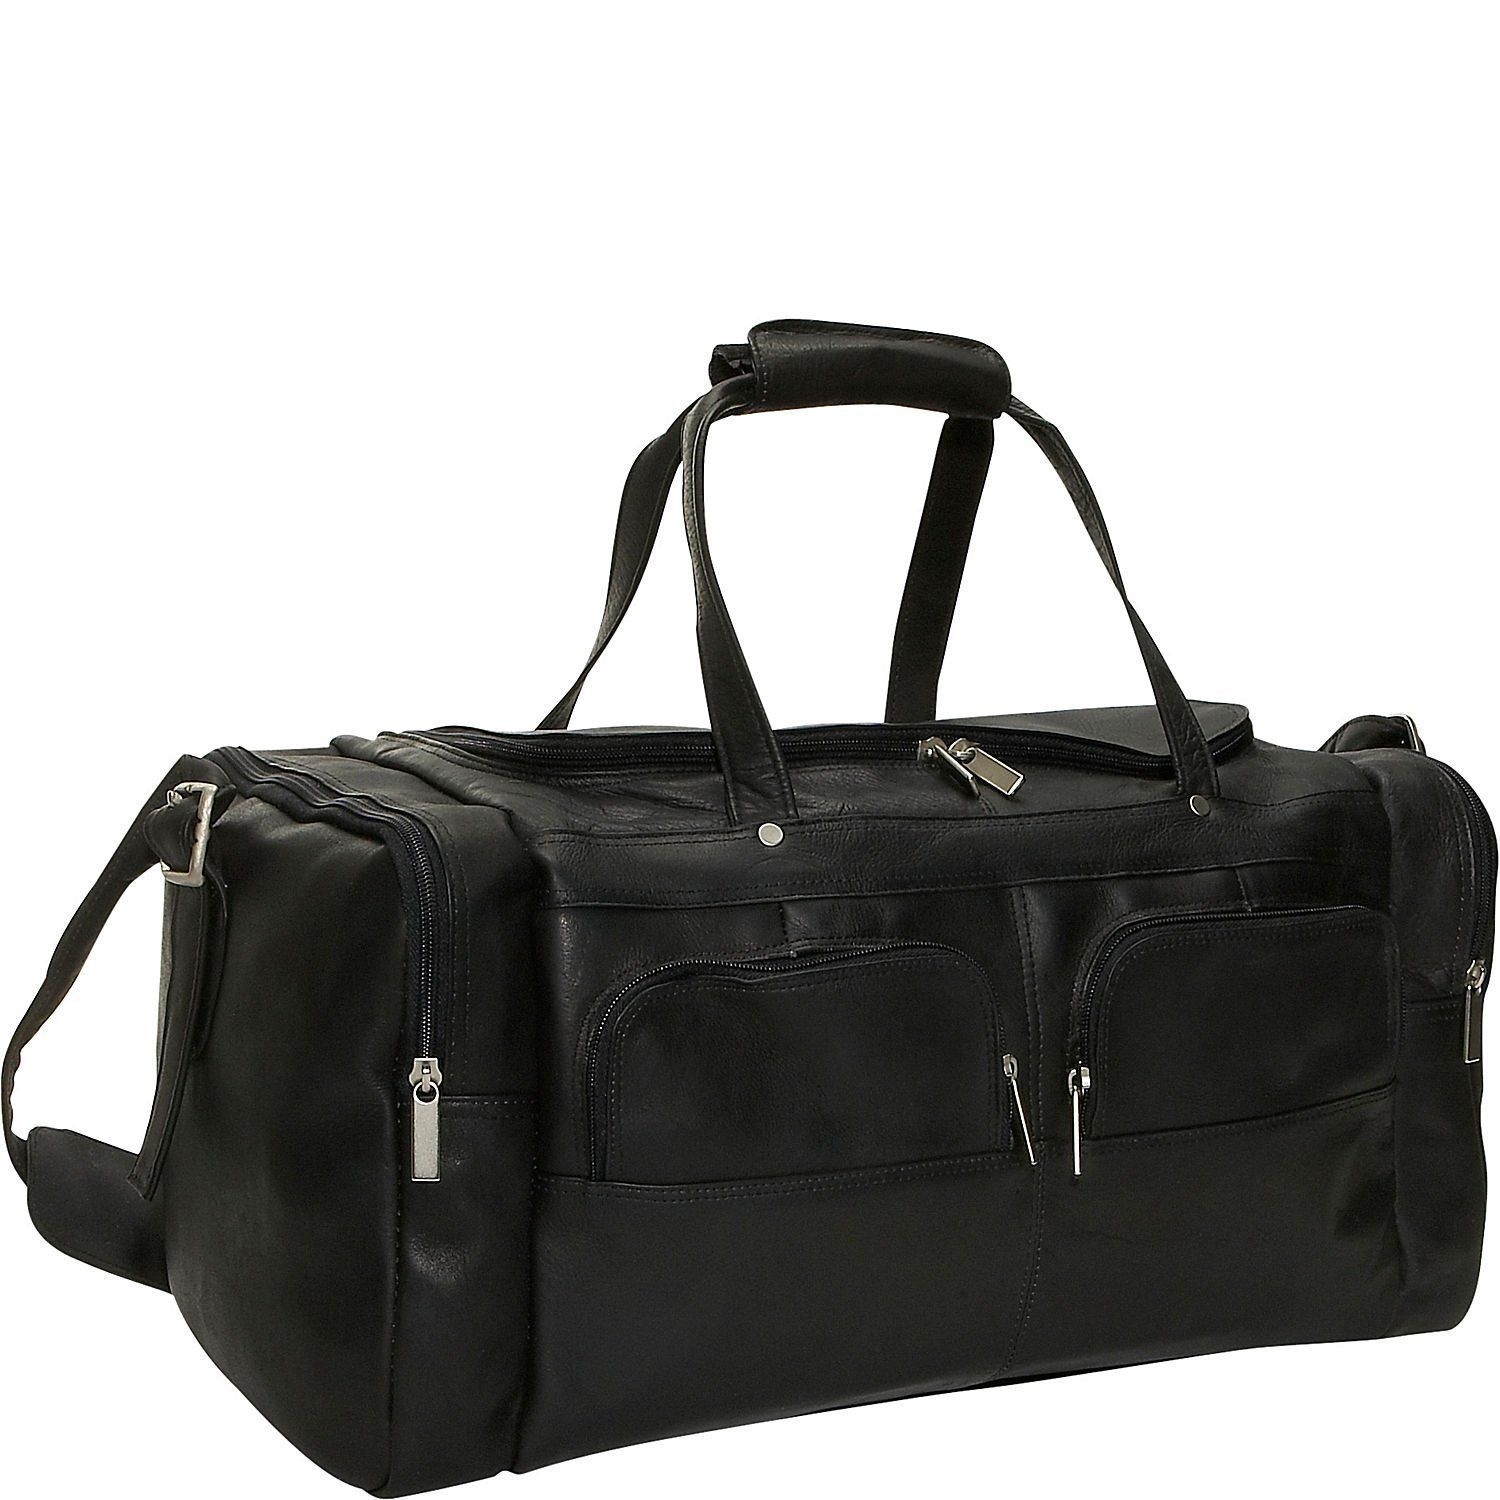 David King Leather Multi Pocket Sport Duffel ** Details can be found by clicking on the image. (This is an Amazon Affiliate link)